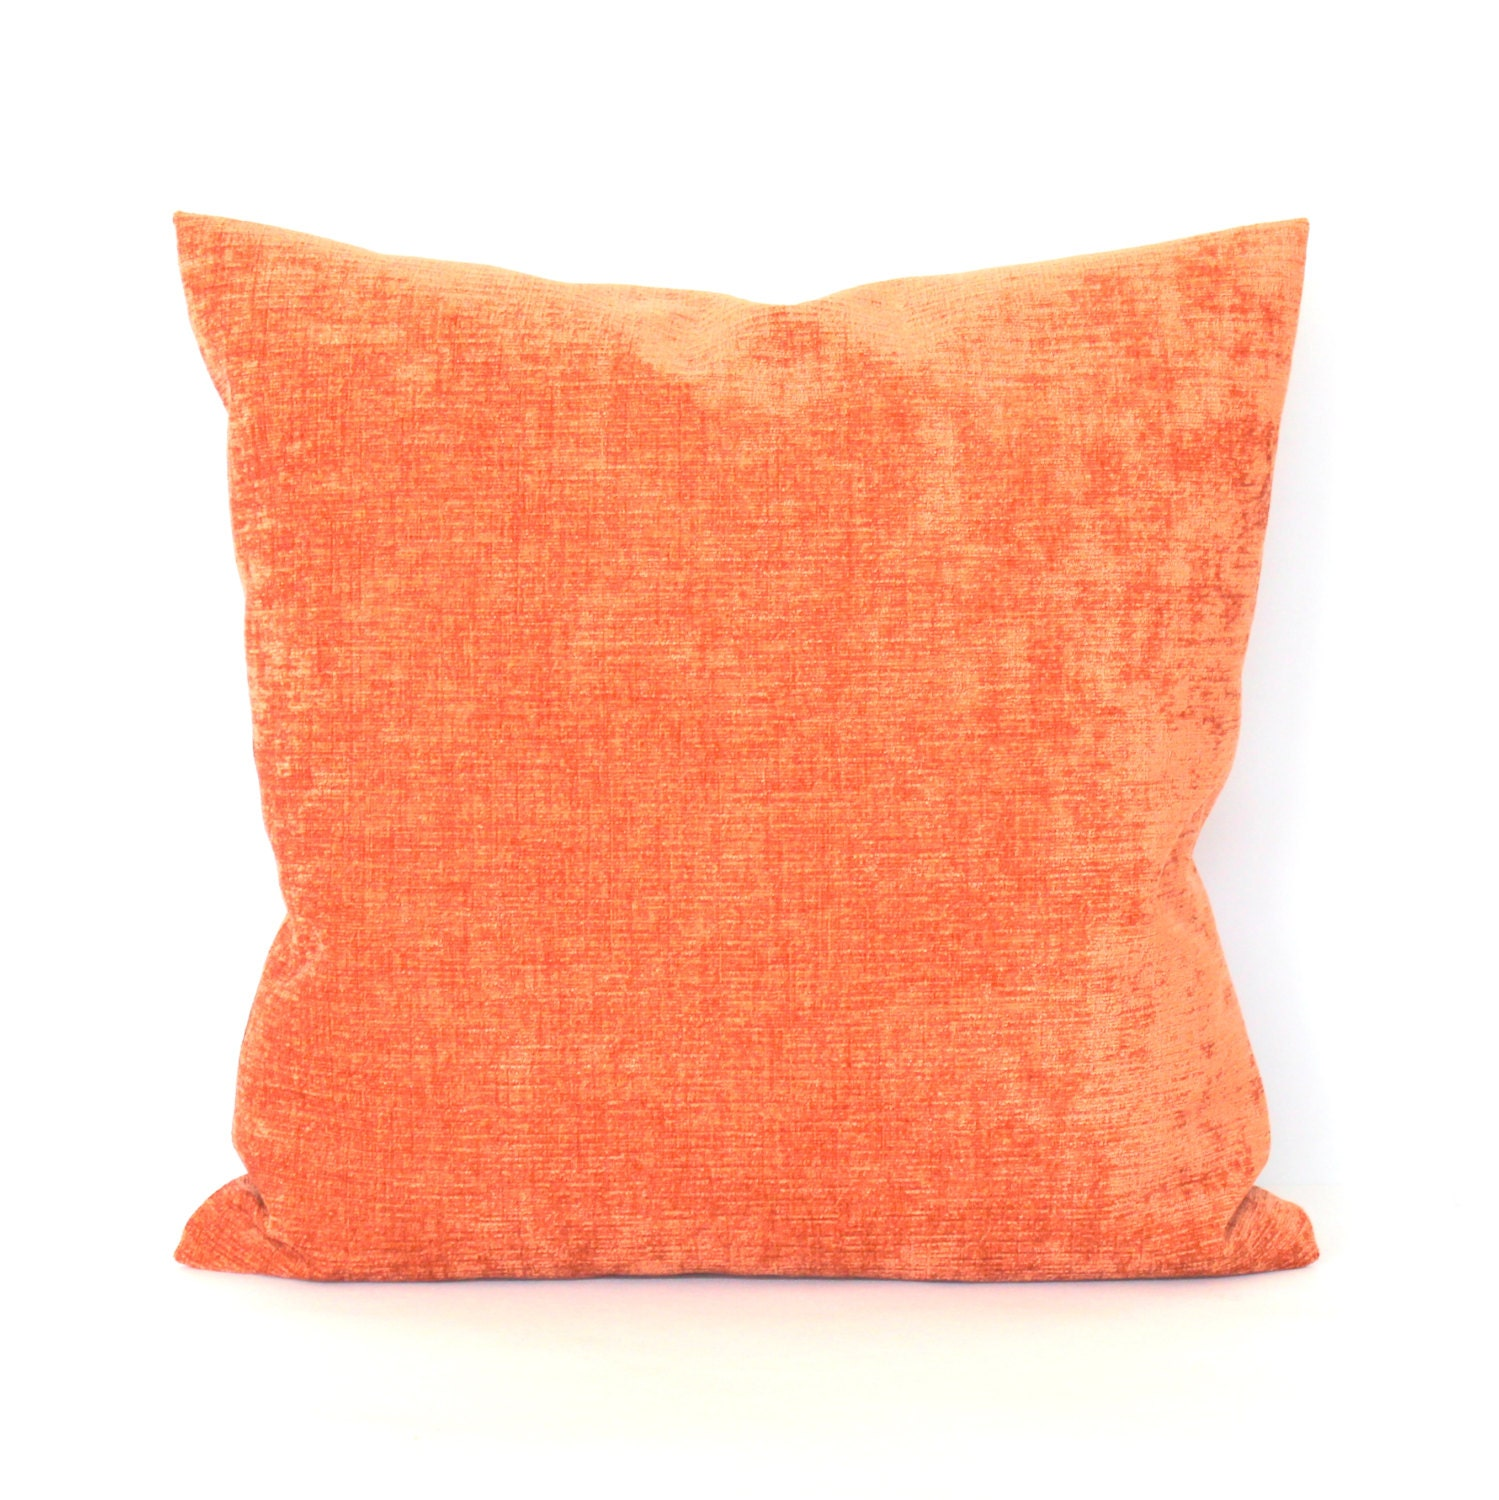 Throw Pillow Rust : Rust Orange Throw Pillow Cover Chenille by couchdwellers on Etsy